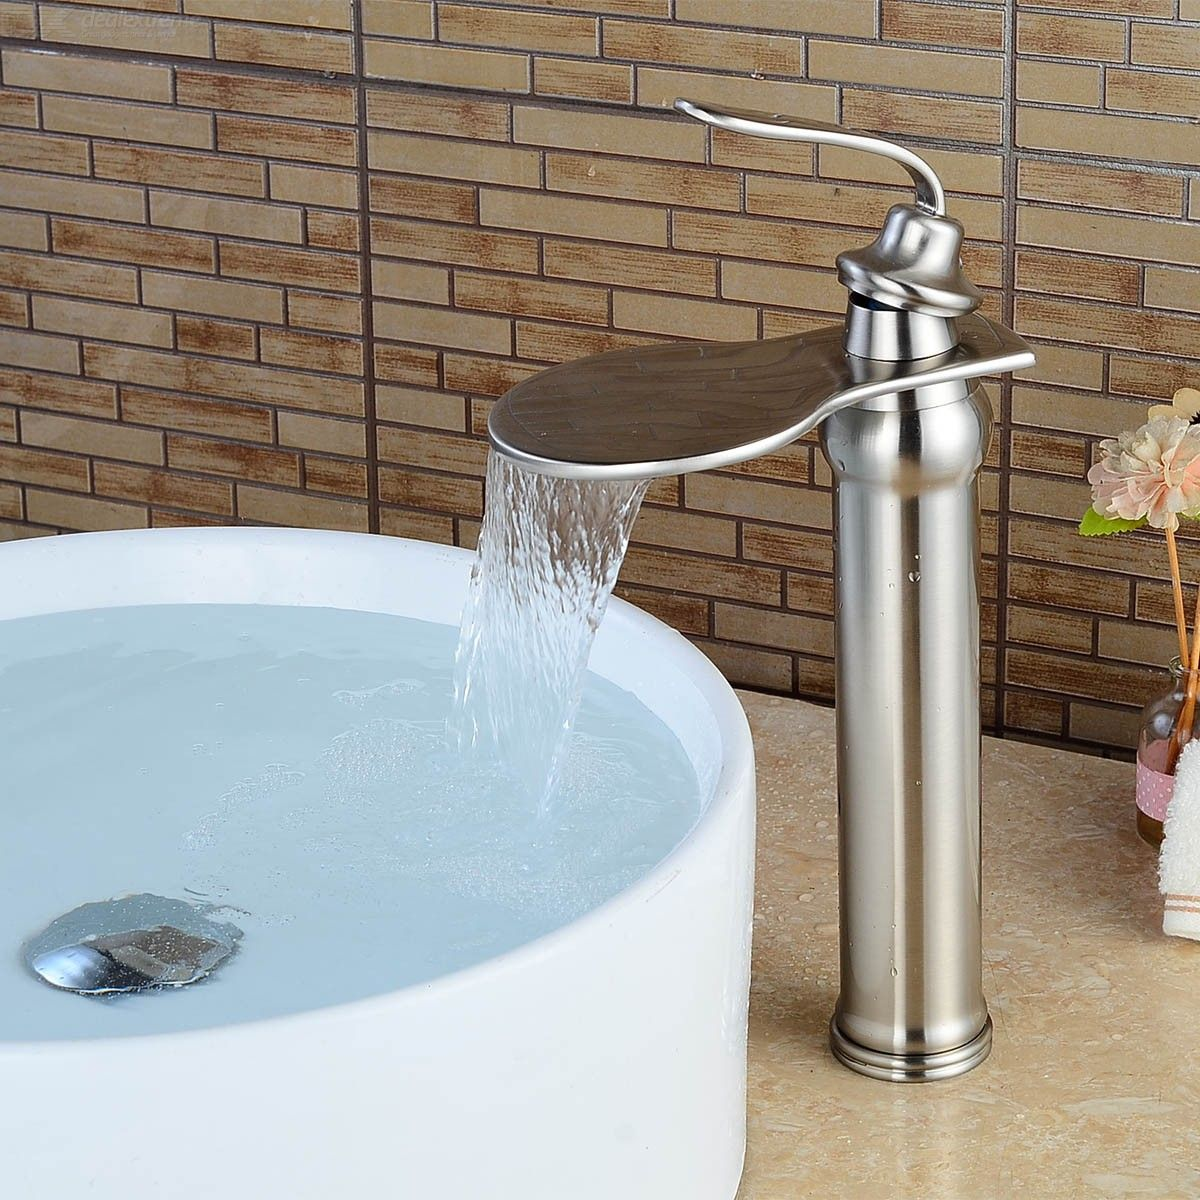 Contemporary Brass Centerset Waterfall Ceramic Valve Single Handle One Hole Nickel Brushed, Bathroom Sink Faucet